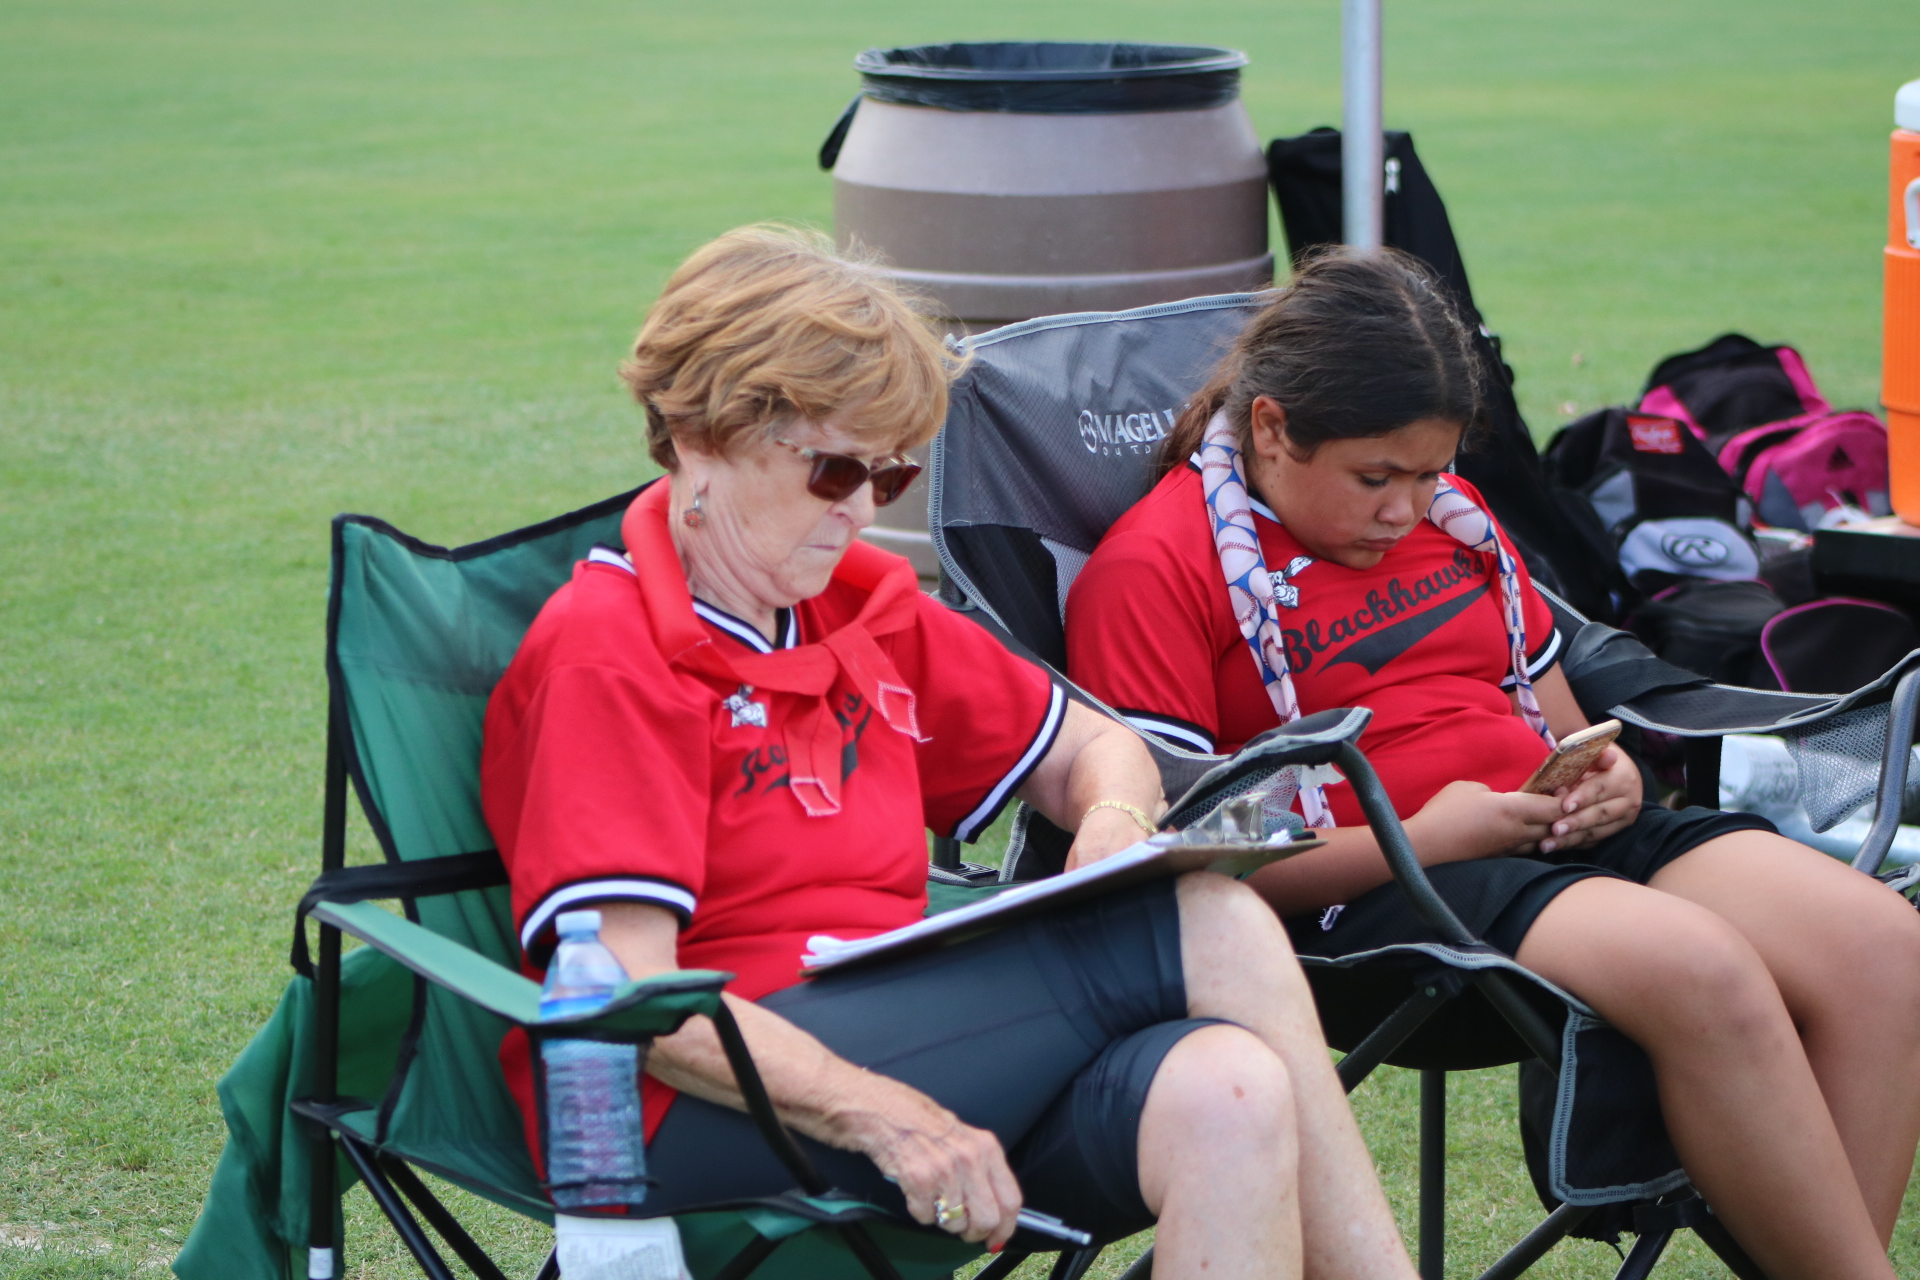 Two Austin Blackhawks volunteers sit on the sidelines.